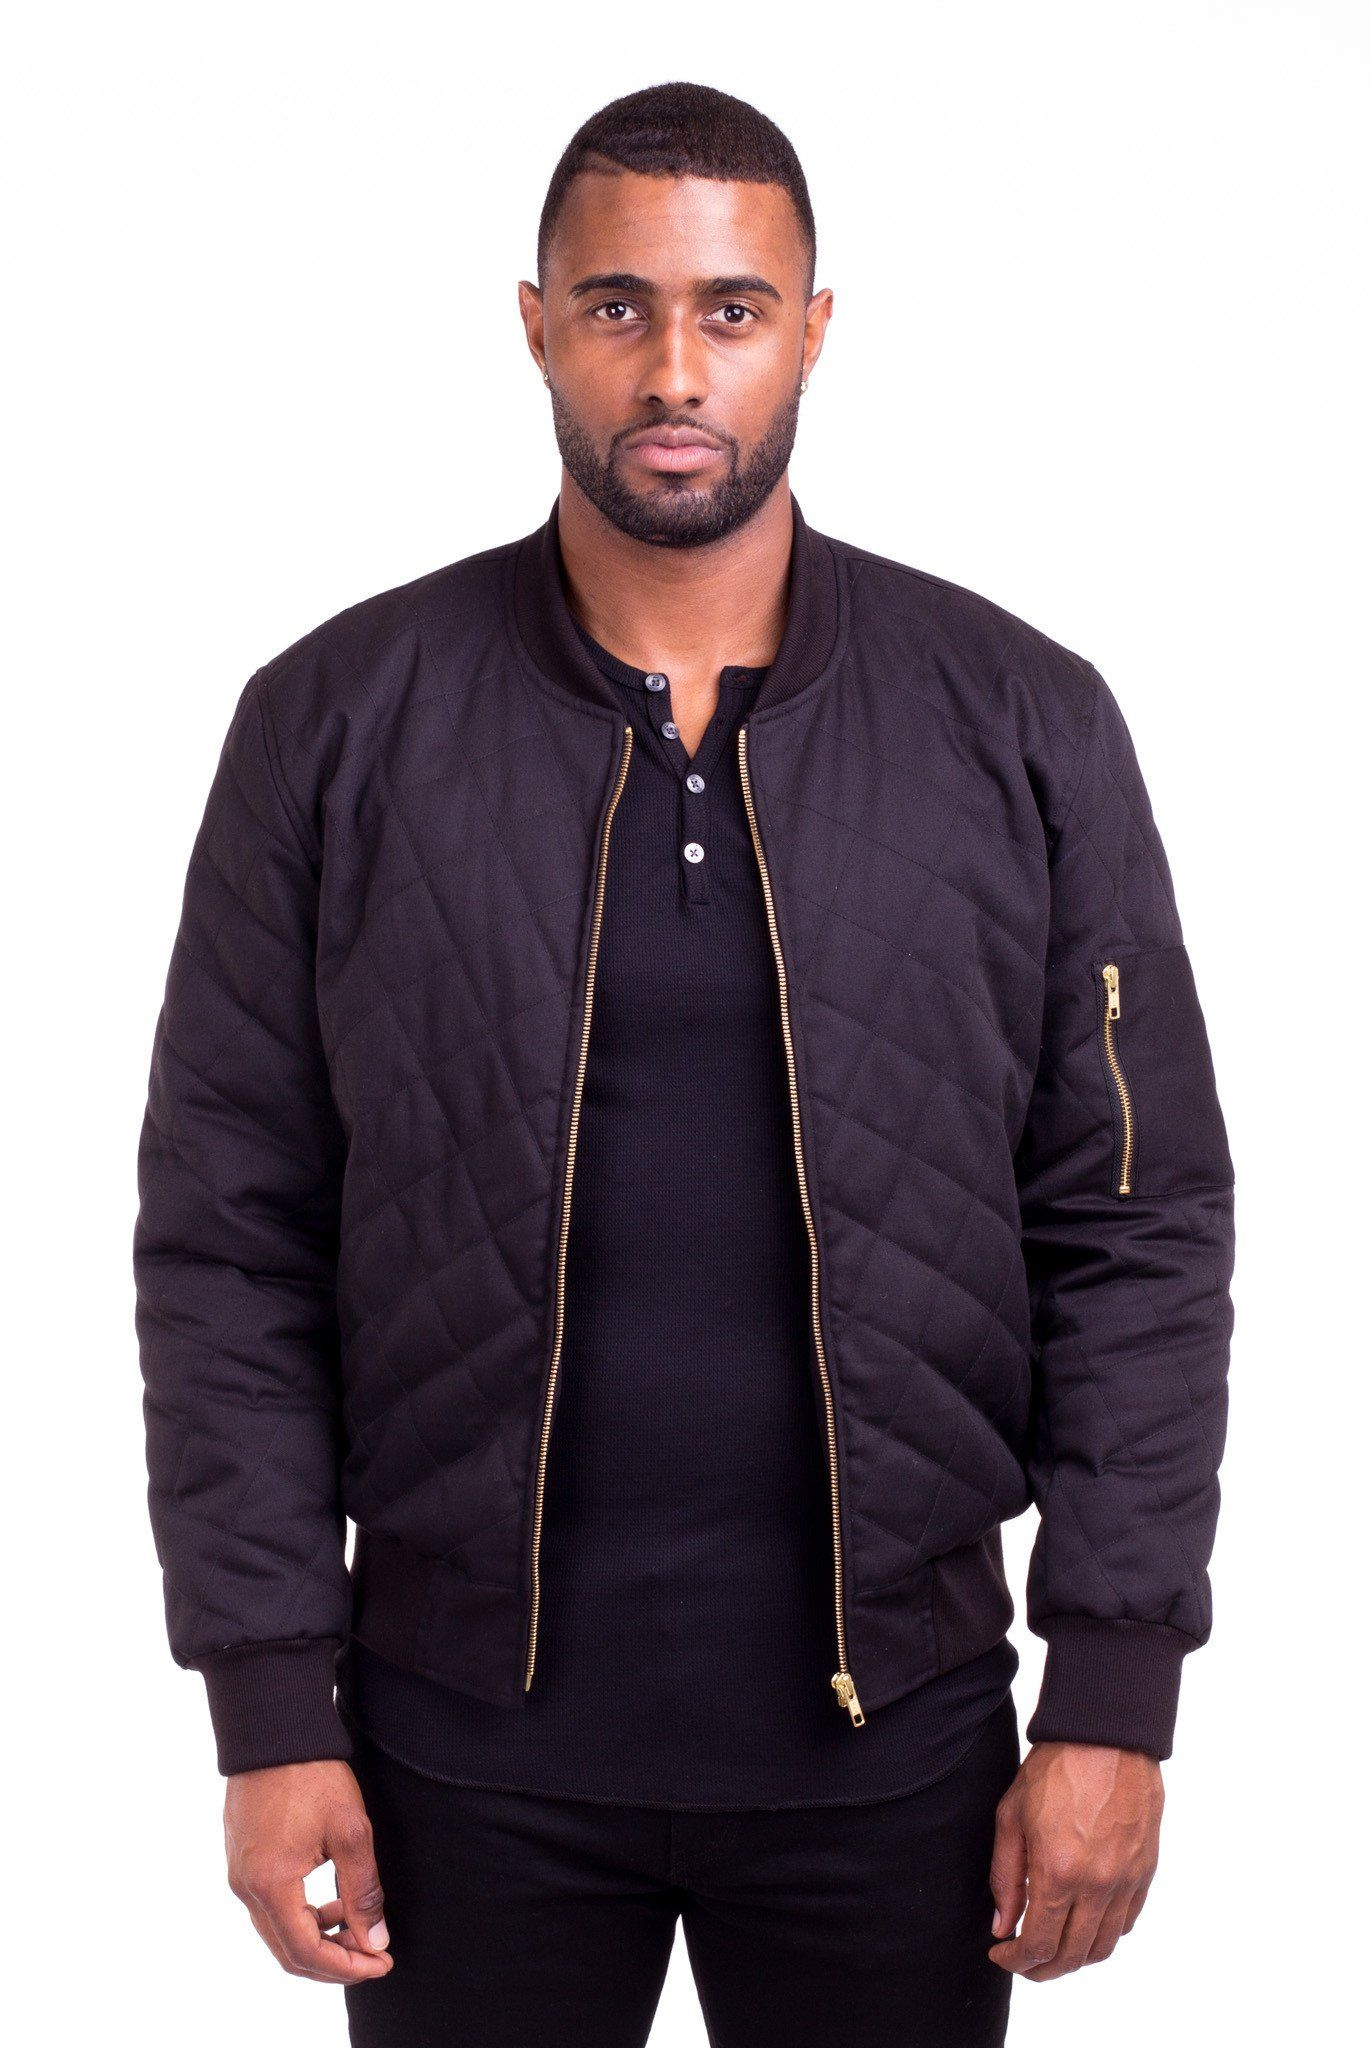 Ace Quilted Bomber Jacket - Poor Little Rich Boy Men's Jackets and Outerwear - Plrbclothing.com